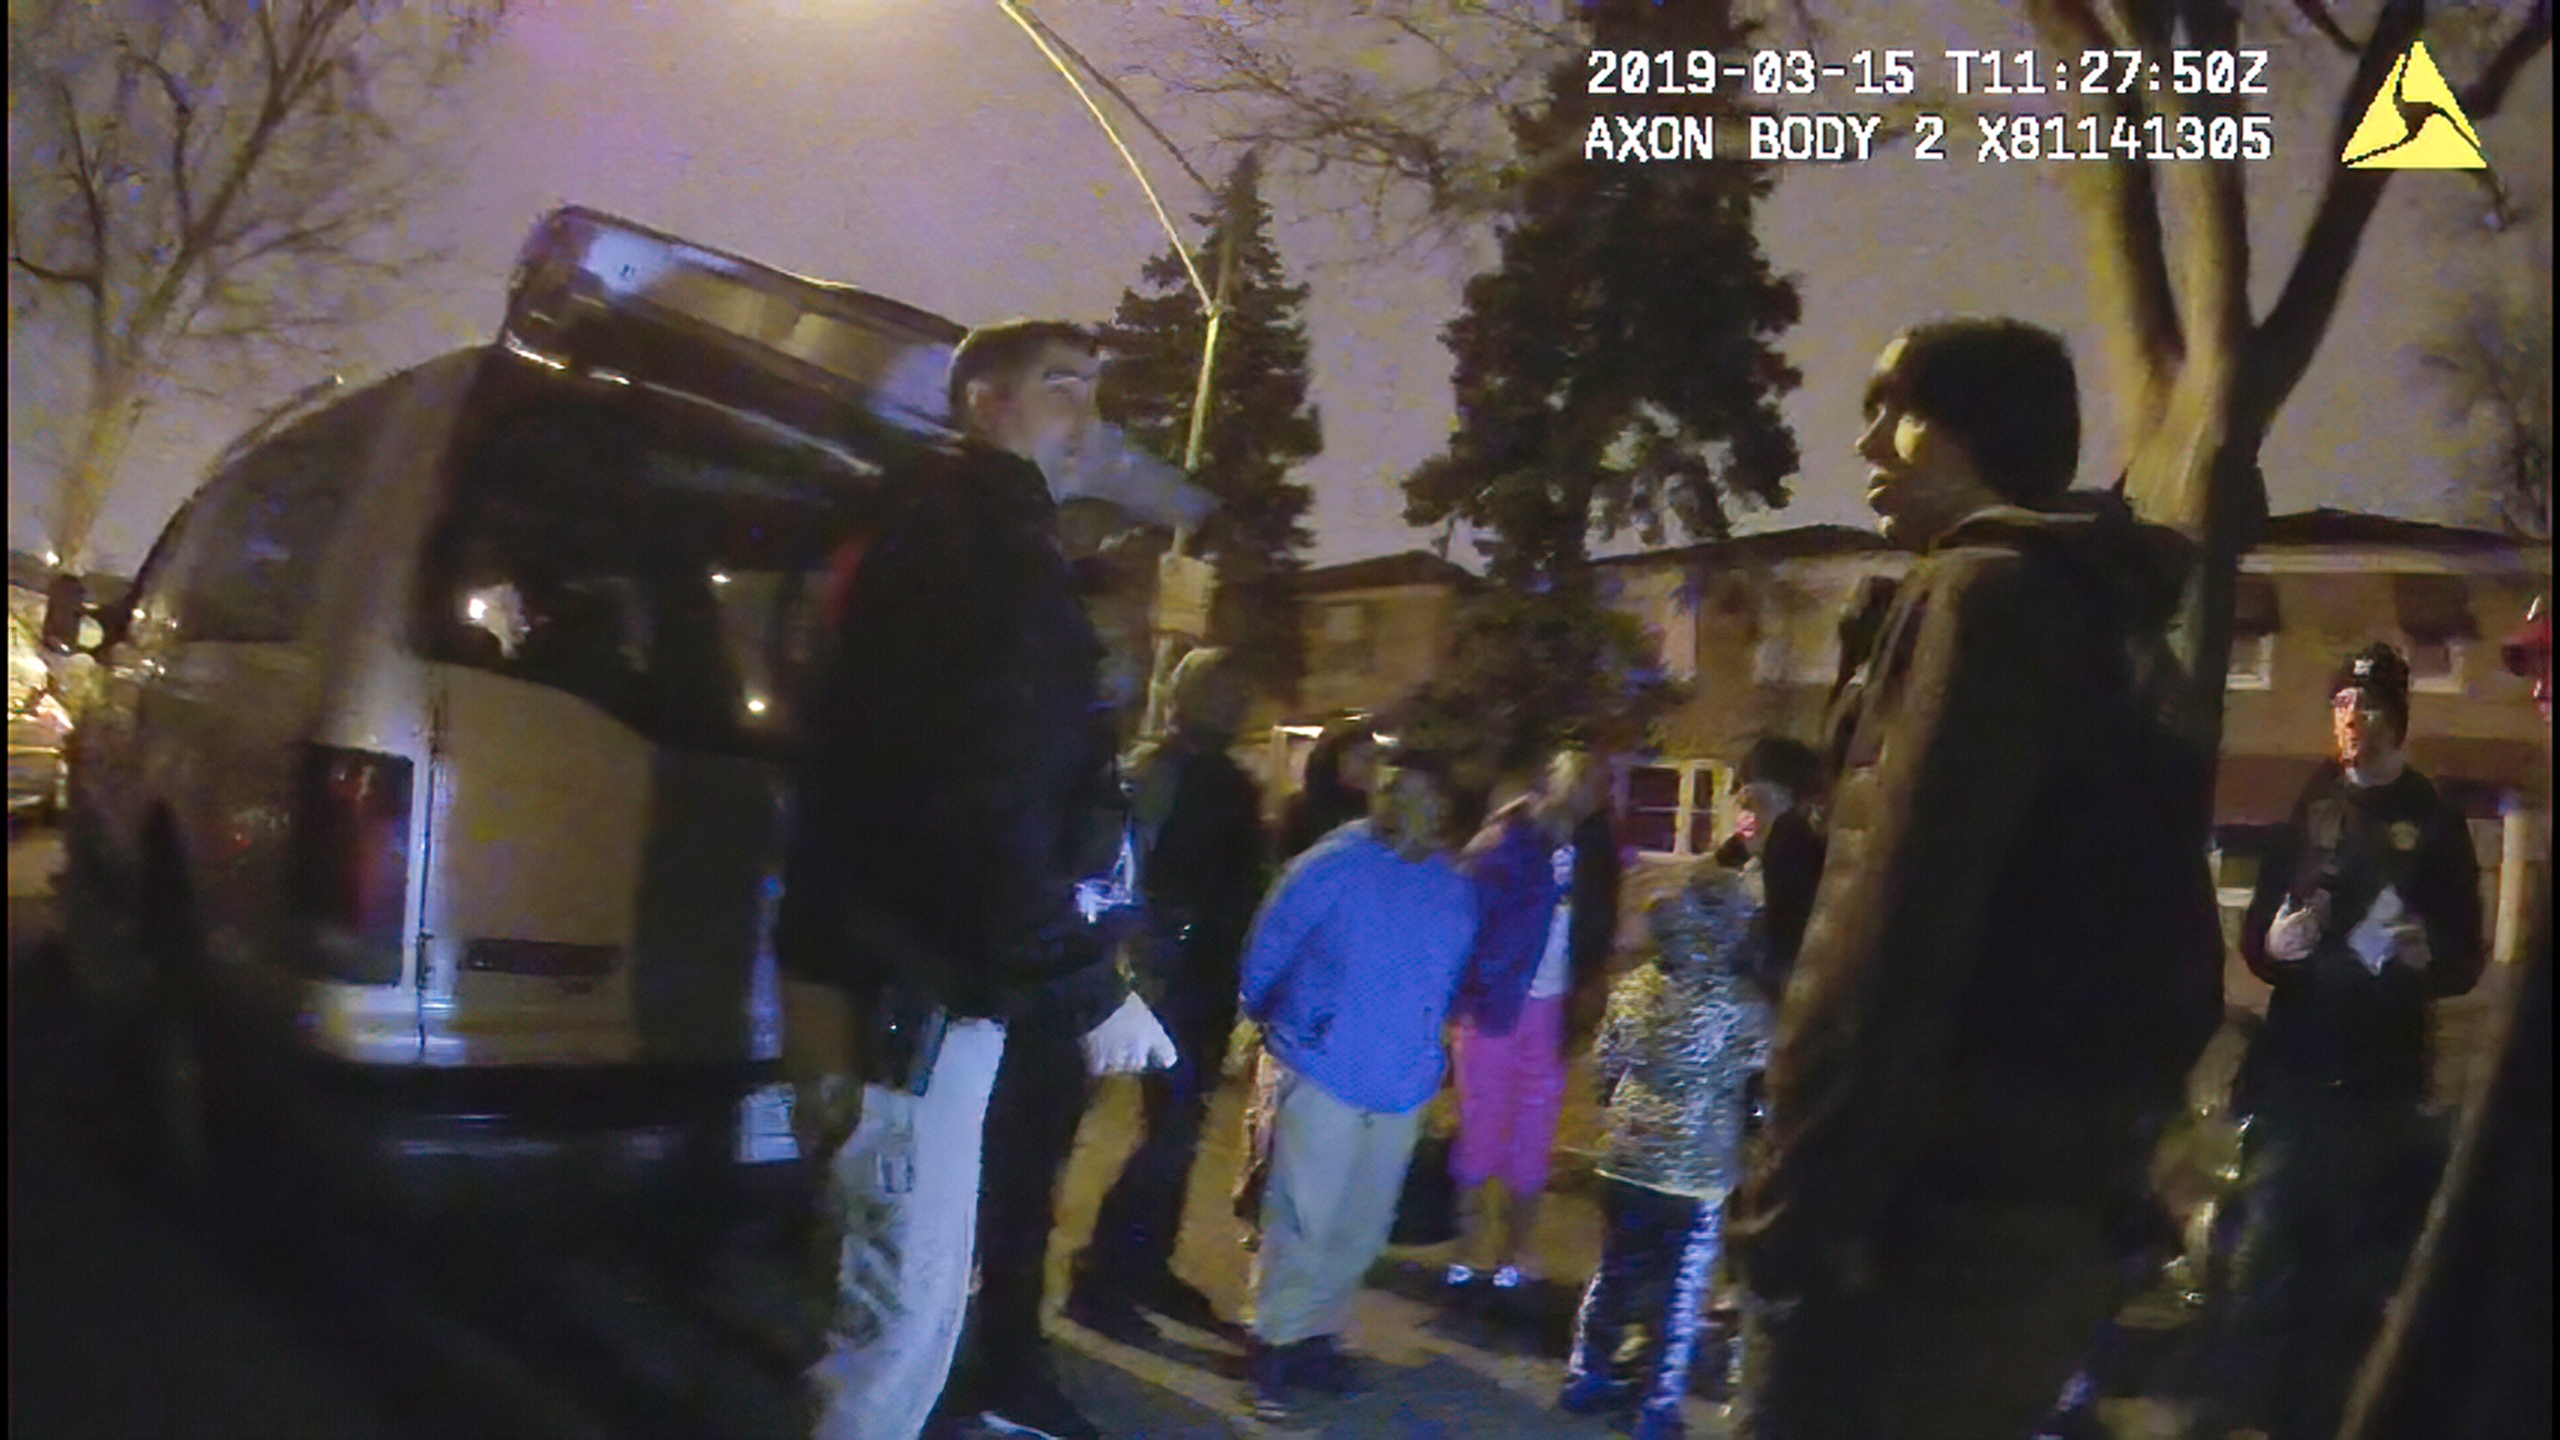 This image provided by the Chicago Police Department shows an image from video from a police worn body camera on March 15, 2019, in Chicago. Royal Smart, 8, in blue was handcuffed by police in south Chicago. Police were looking for illegal weapons and found none. No one was arrested. (Chicago Police Department via AP)